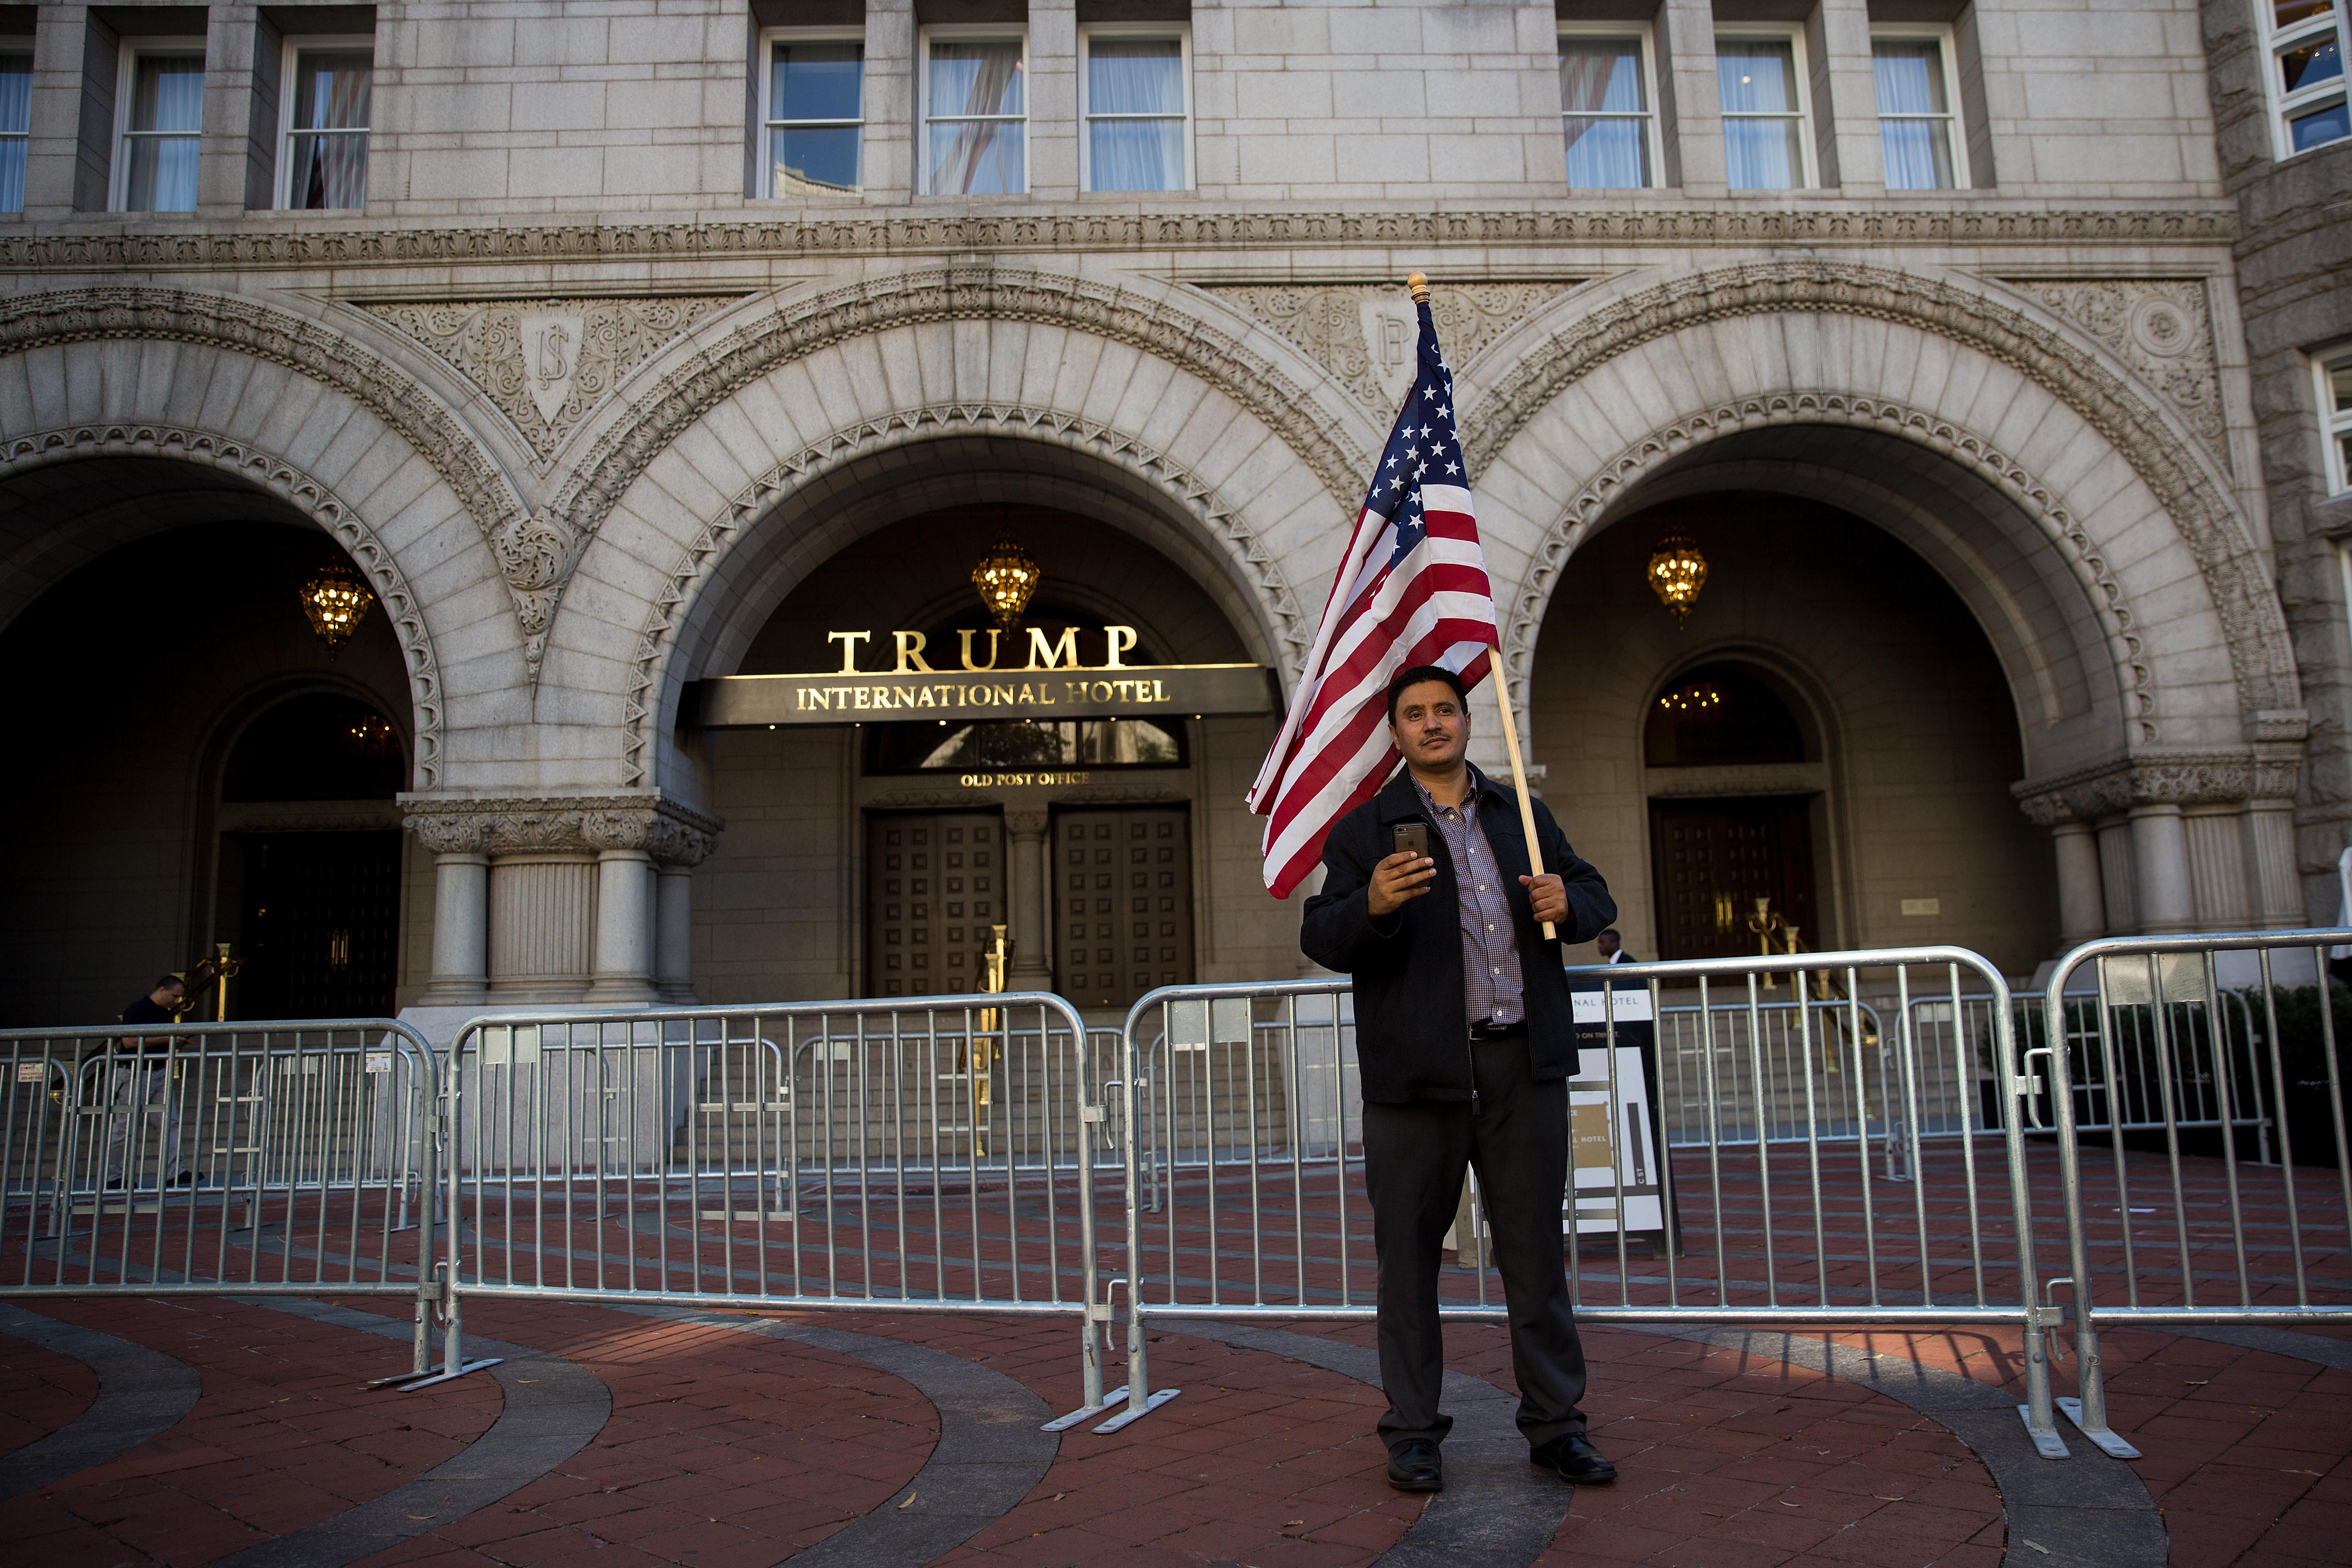 WASHINGTON, DC - OCTOBER 18: A man holds an American flag outside Trump International Hotel following a protest against the Trump administration's proposed travel ban, October 18, 2017 in Washington, DC. Early Wednesday morning, a federal judge in Maryland granted a motion for a preliminary injunction on the administration's travel ban. This is the Trump administration's third attempt to restrict entry into the United States for citizens from mostly Muslim-majority countries. The Department of Justice said it plans to appeal and the White House issued a statement calling the judge's decision 'dangerously flawed.' (Photo by Drew Angerer/Getty Images)